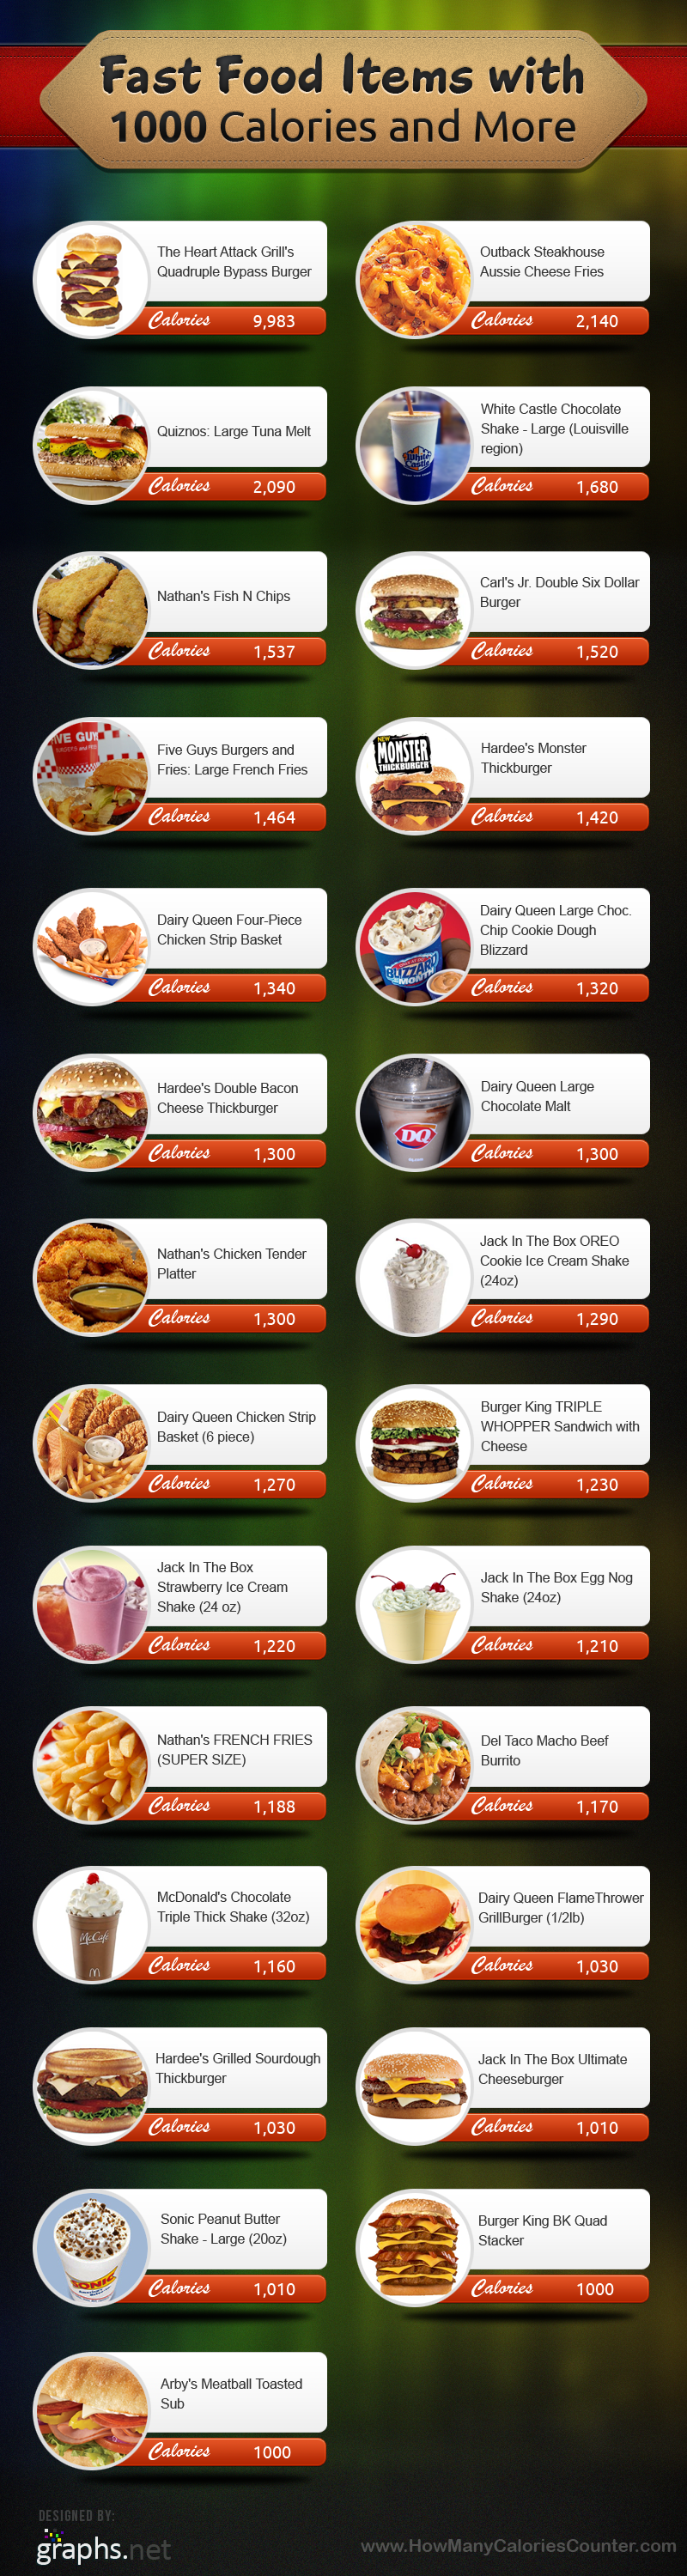 Calorie Laden Fast Food Items